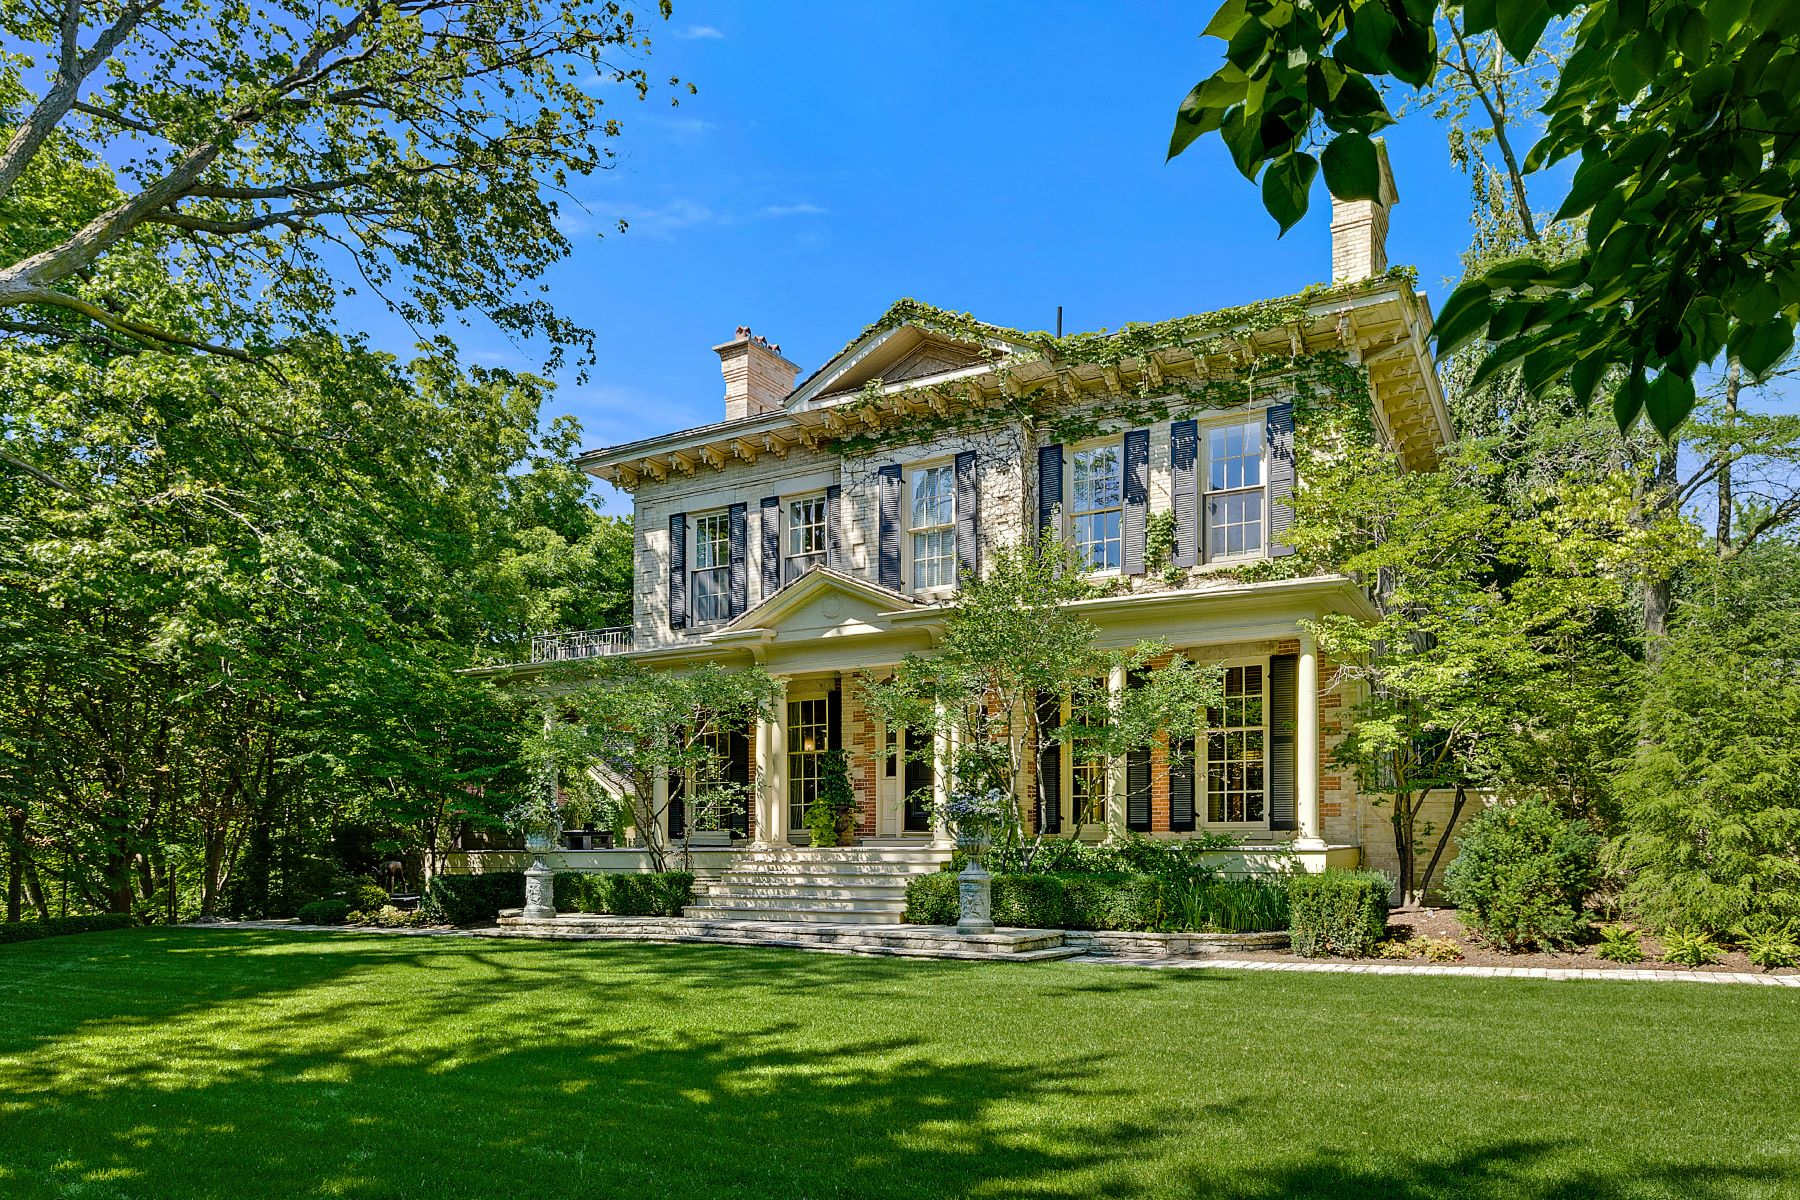 Single Family Home for Sale at Historic, Built Circa 1857 124 Park Road Toronto, Ontario M4W2N7 Canada